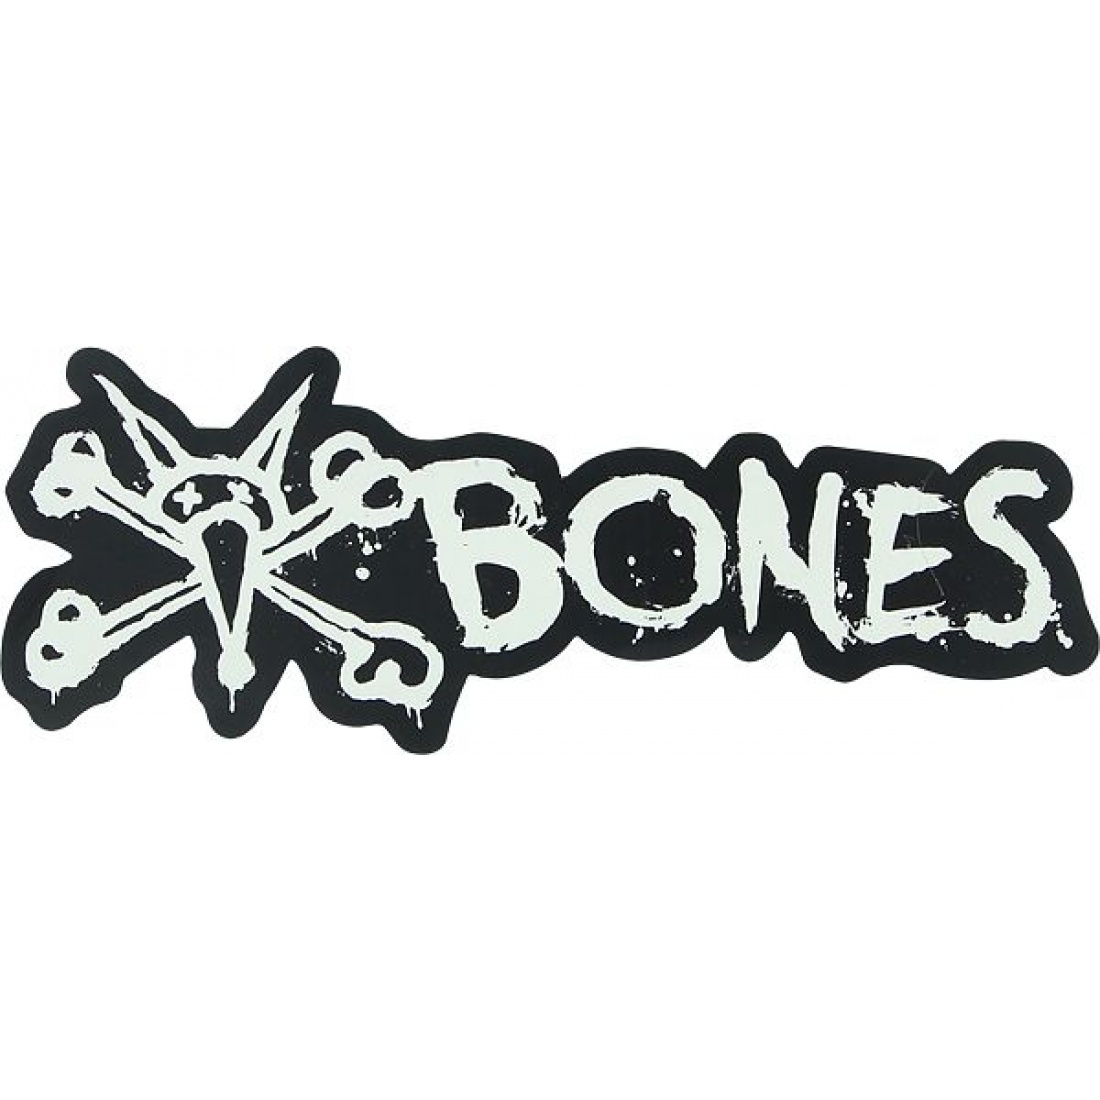 "BONES WHEELS Vato Text 6"" Sticker (1 Sticker)"